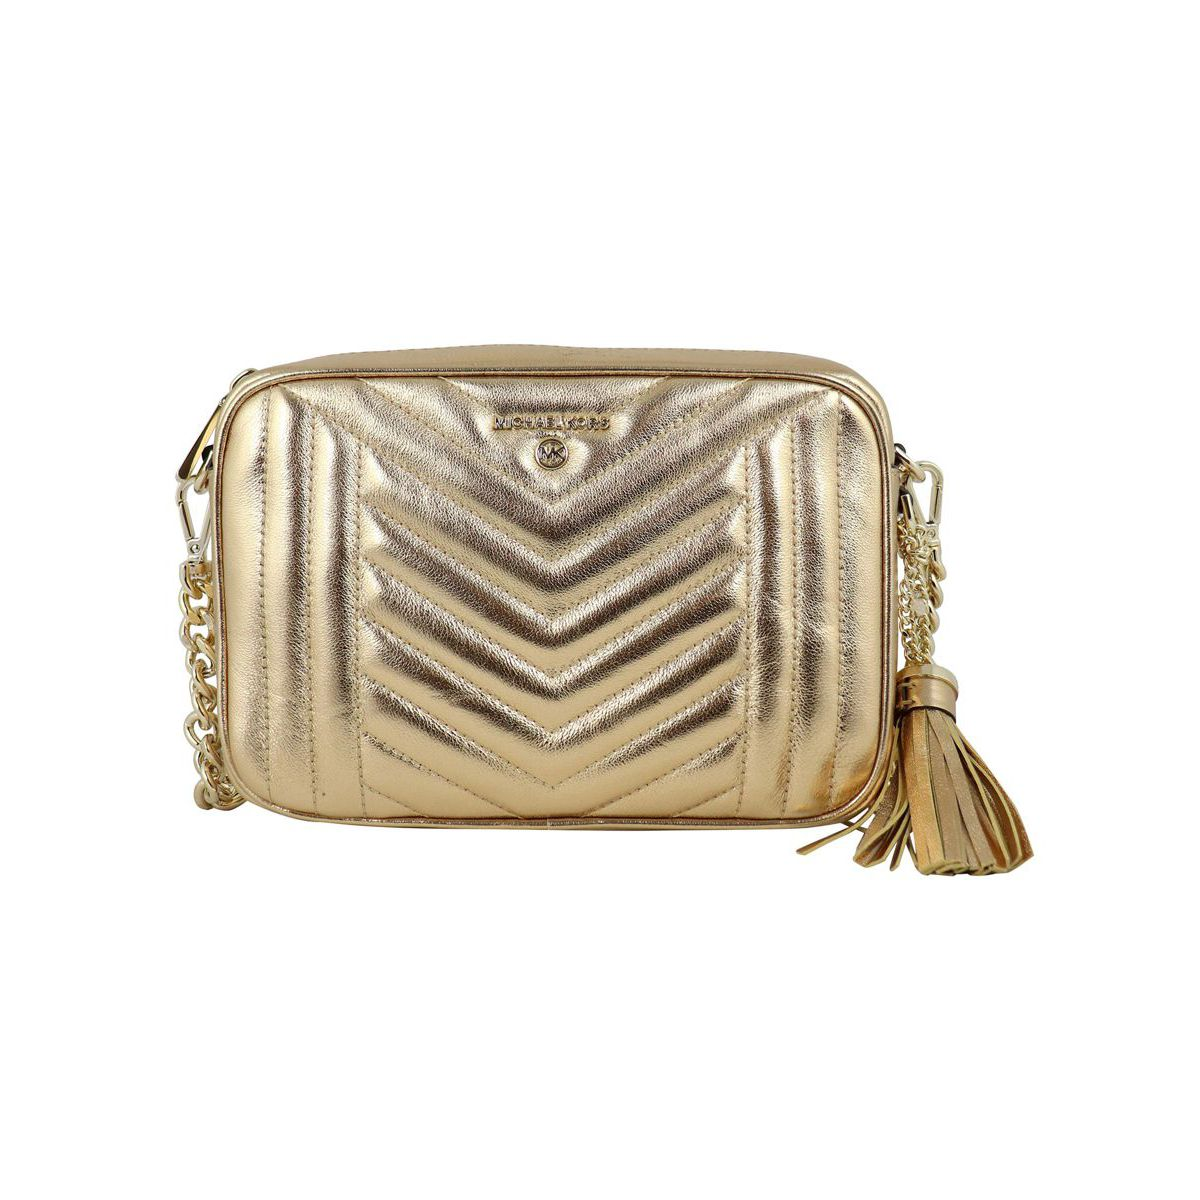 MD CAMERA BAG bag in matelassé leather Gold Michael Kors